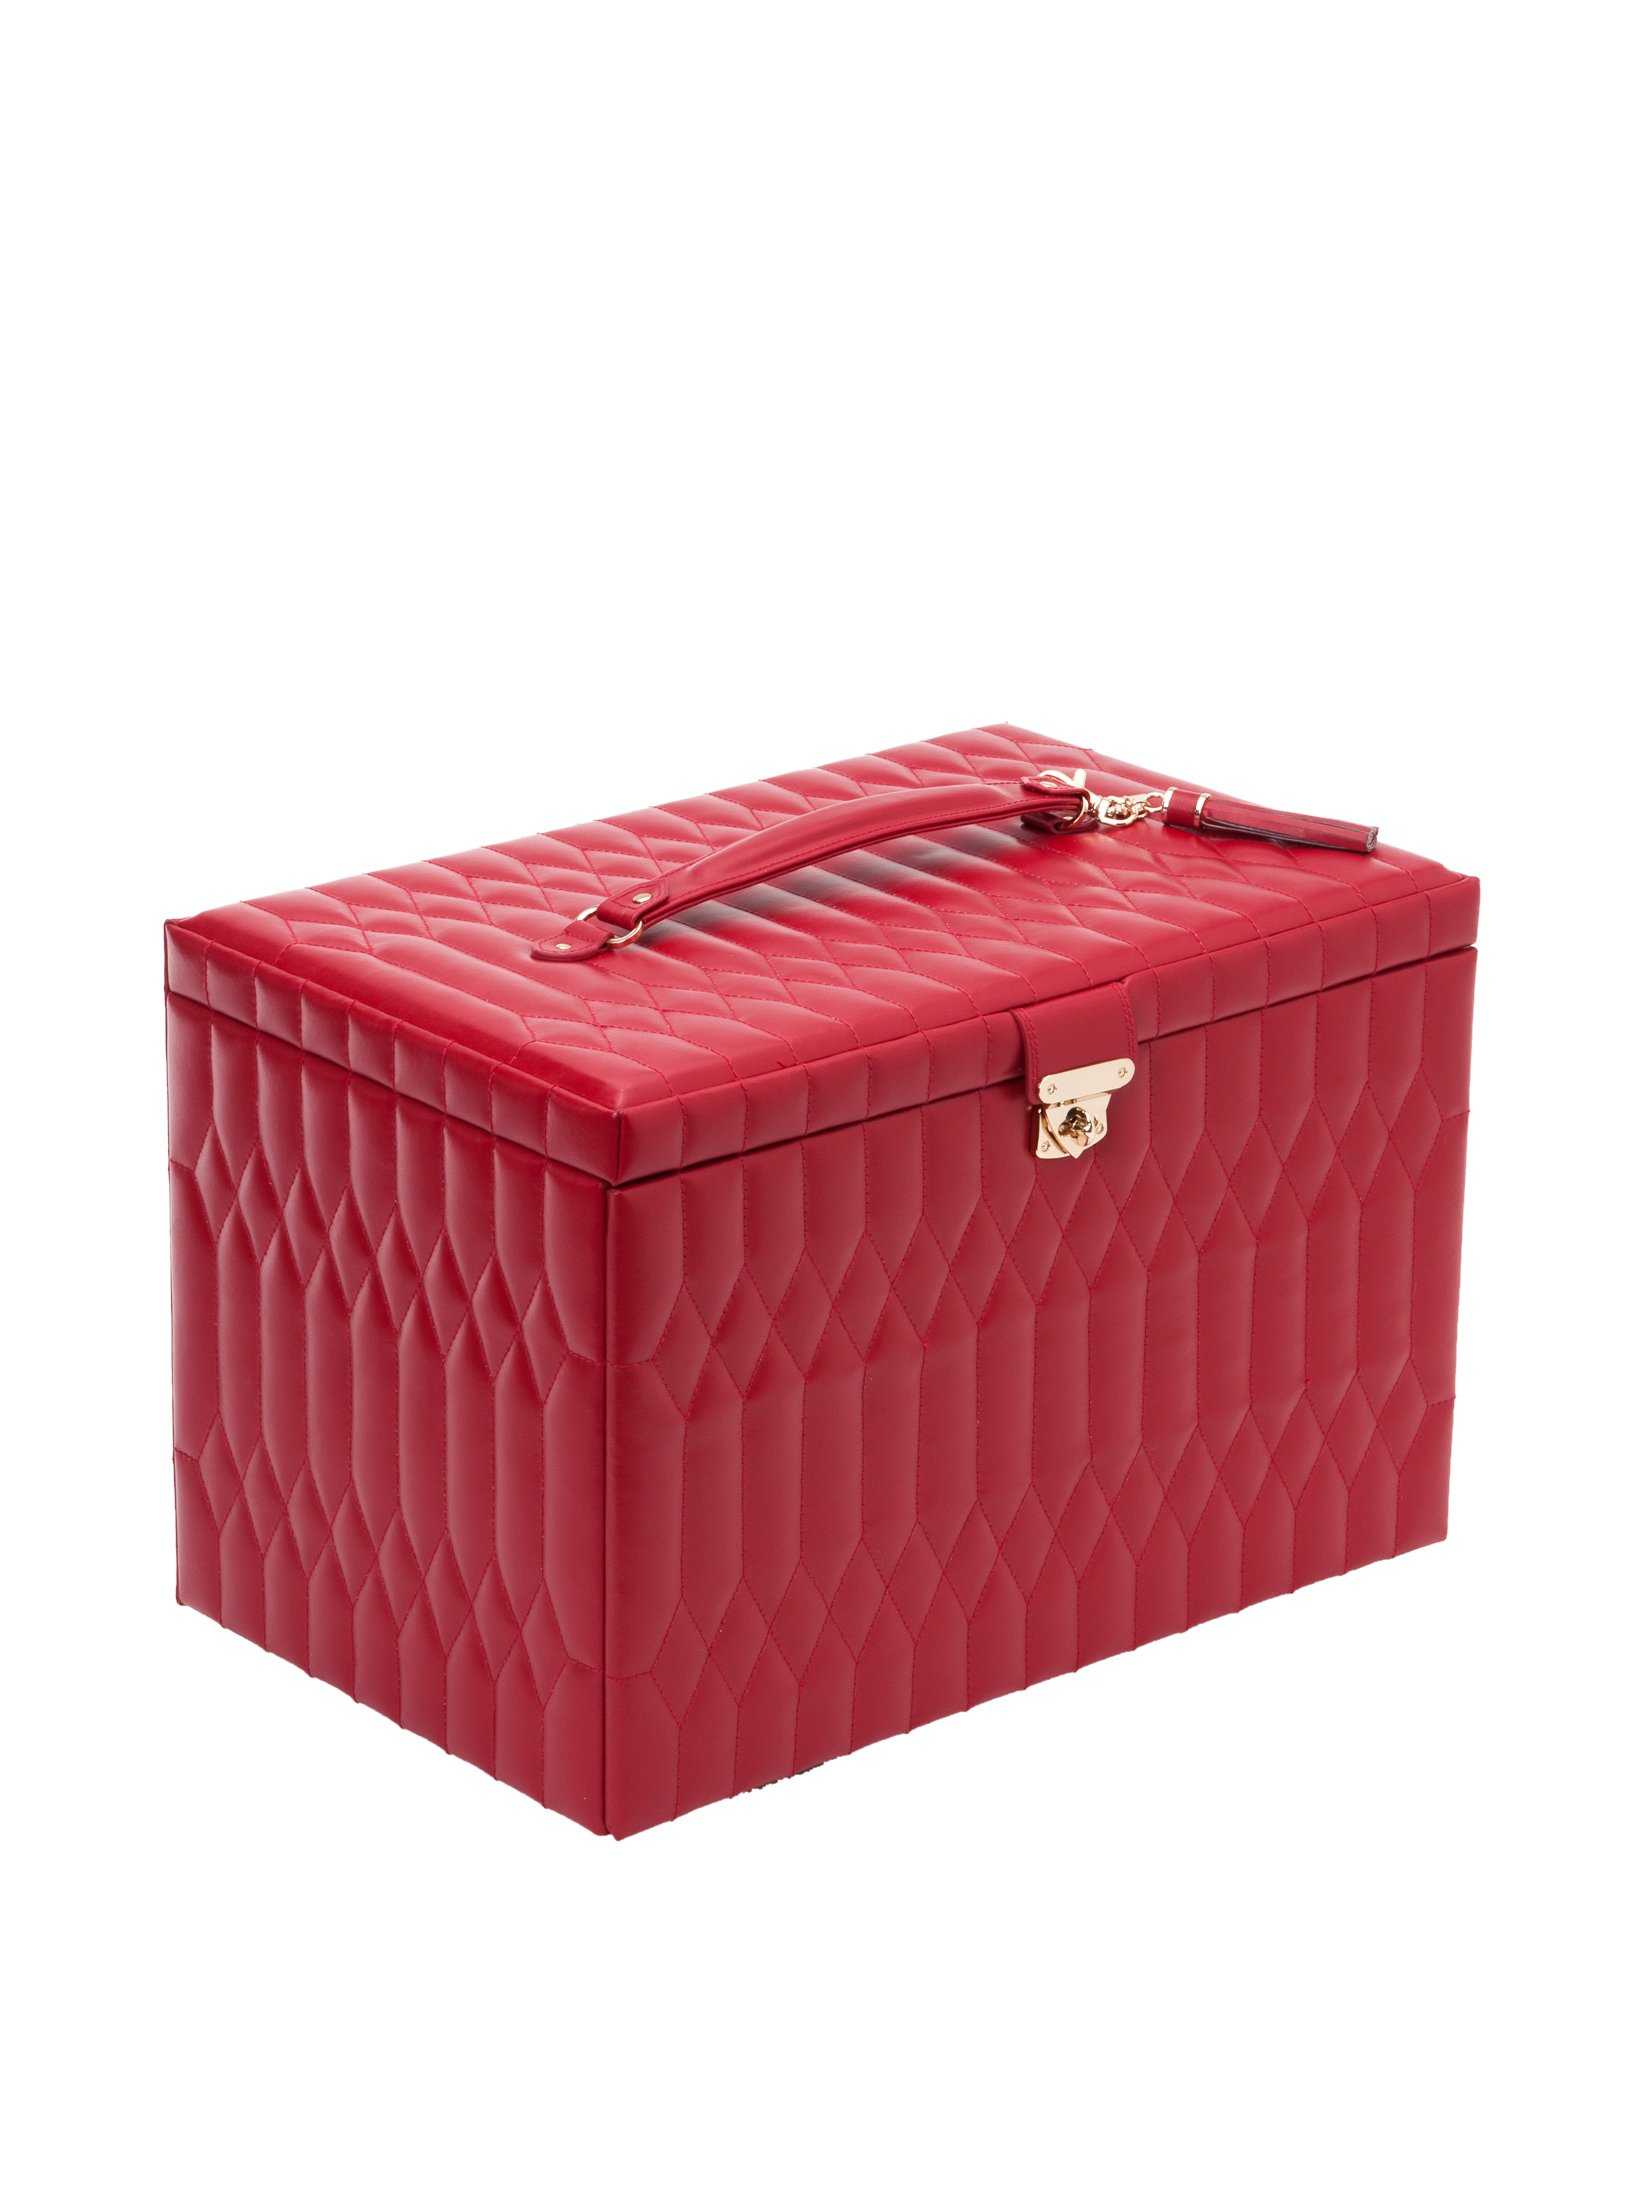 WOLF 329572 Caroline Extra Large Jewelry Case, Red